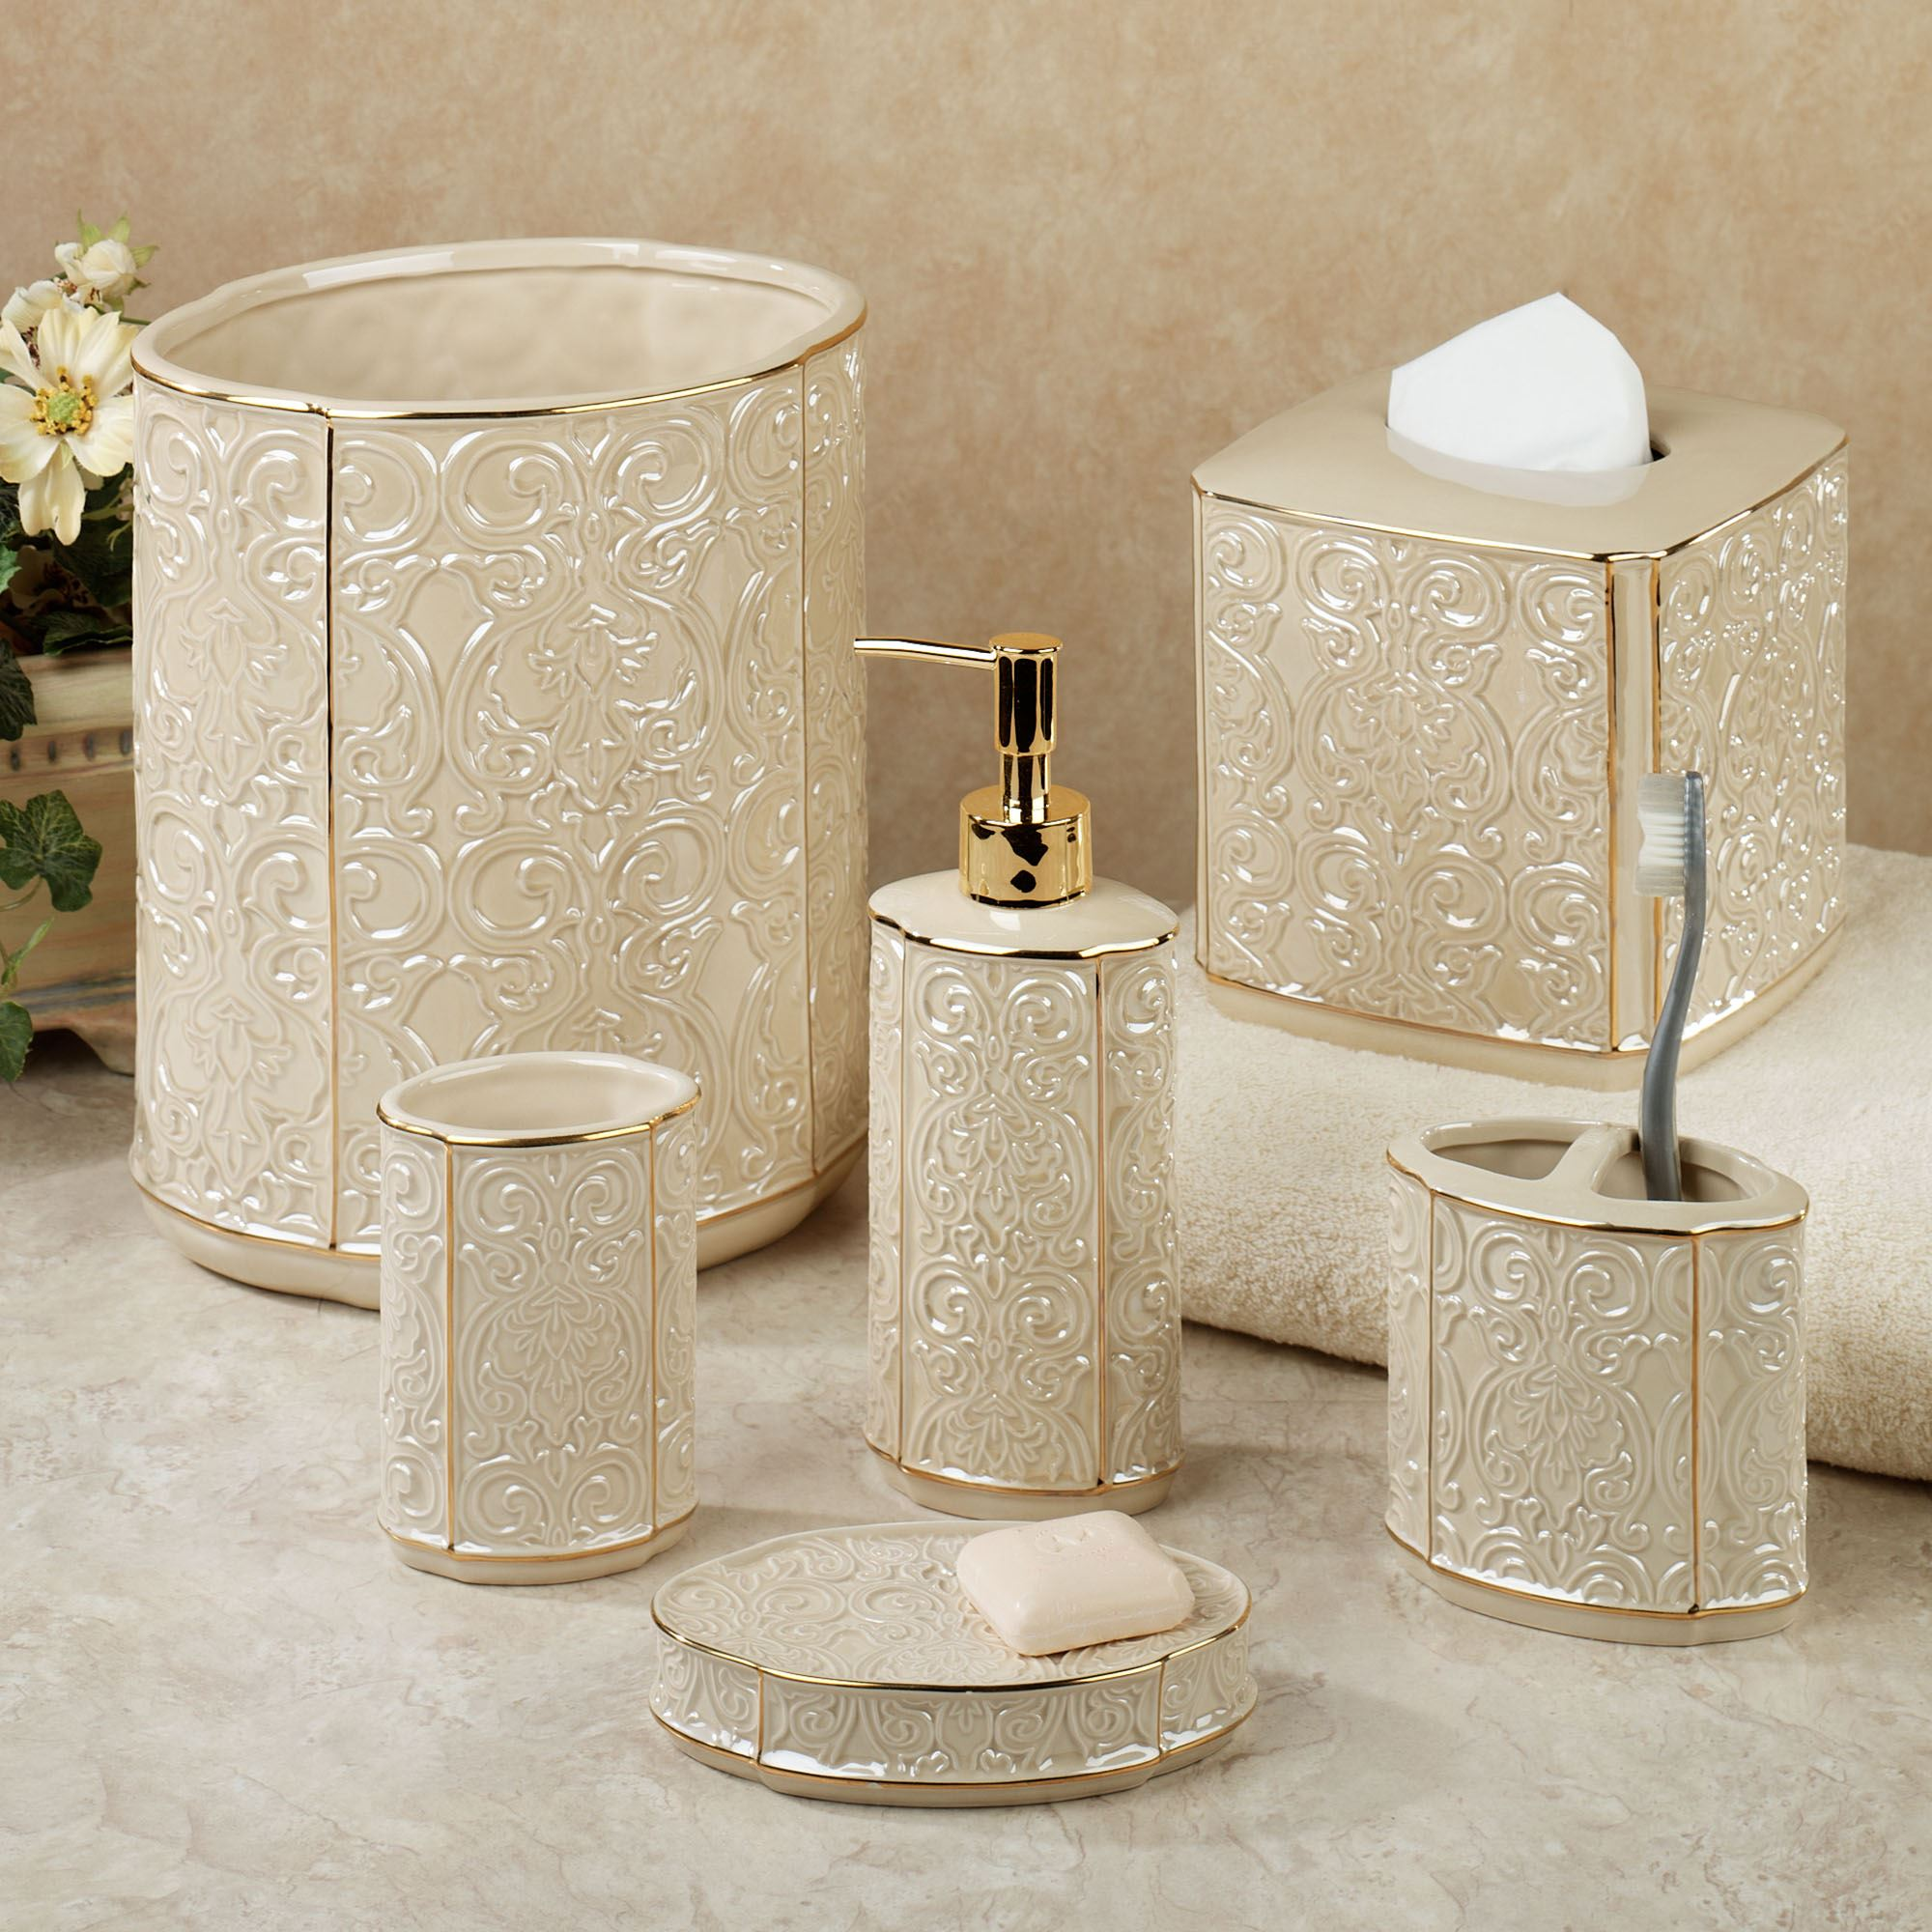 Furla cream damask ceramic bath accessories for Cream bathroom accessories set